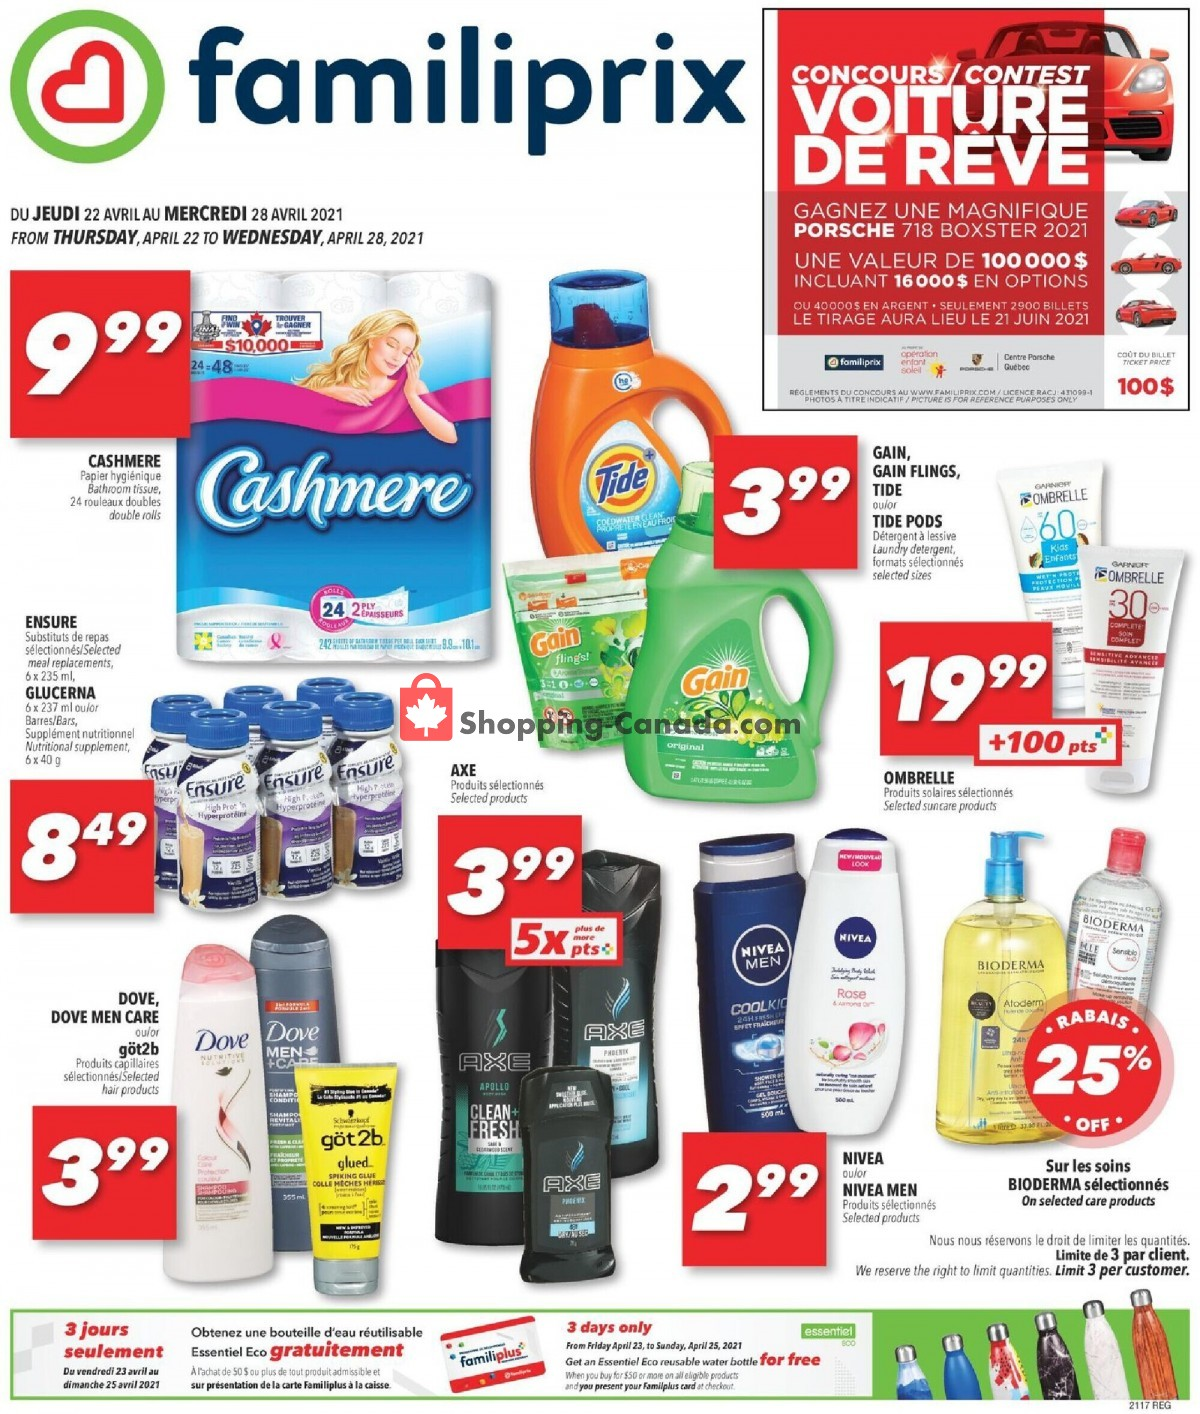 Flyer Familiprix Canada - from Thursday April 22, 2021 to Wednesday April 28, 2021